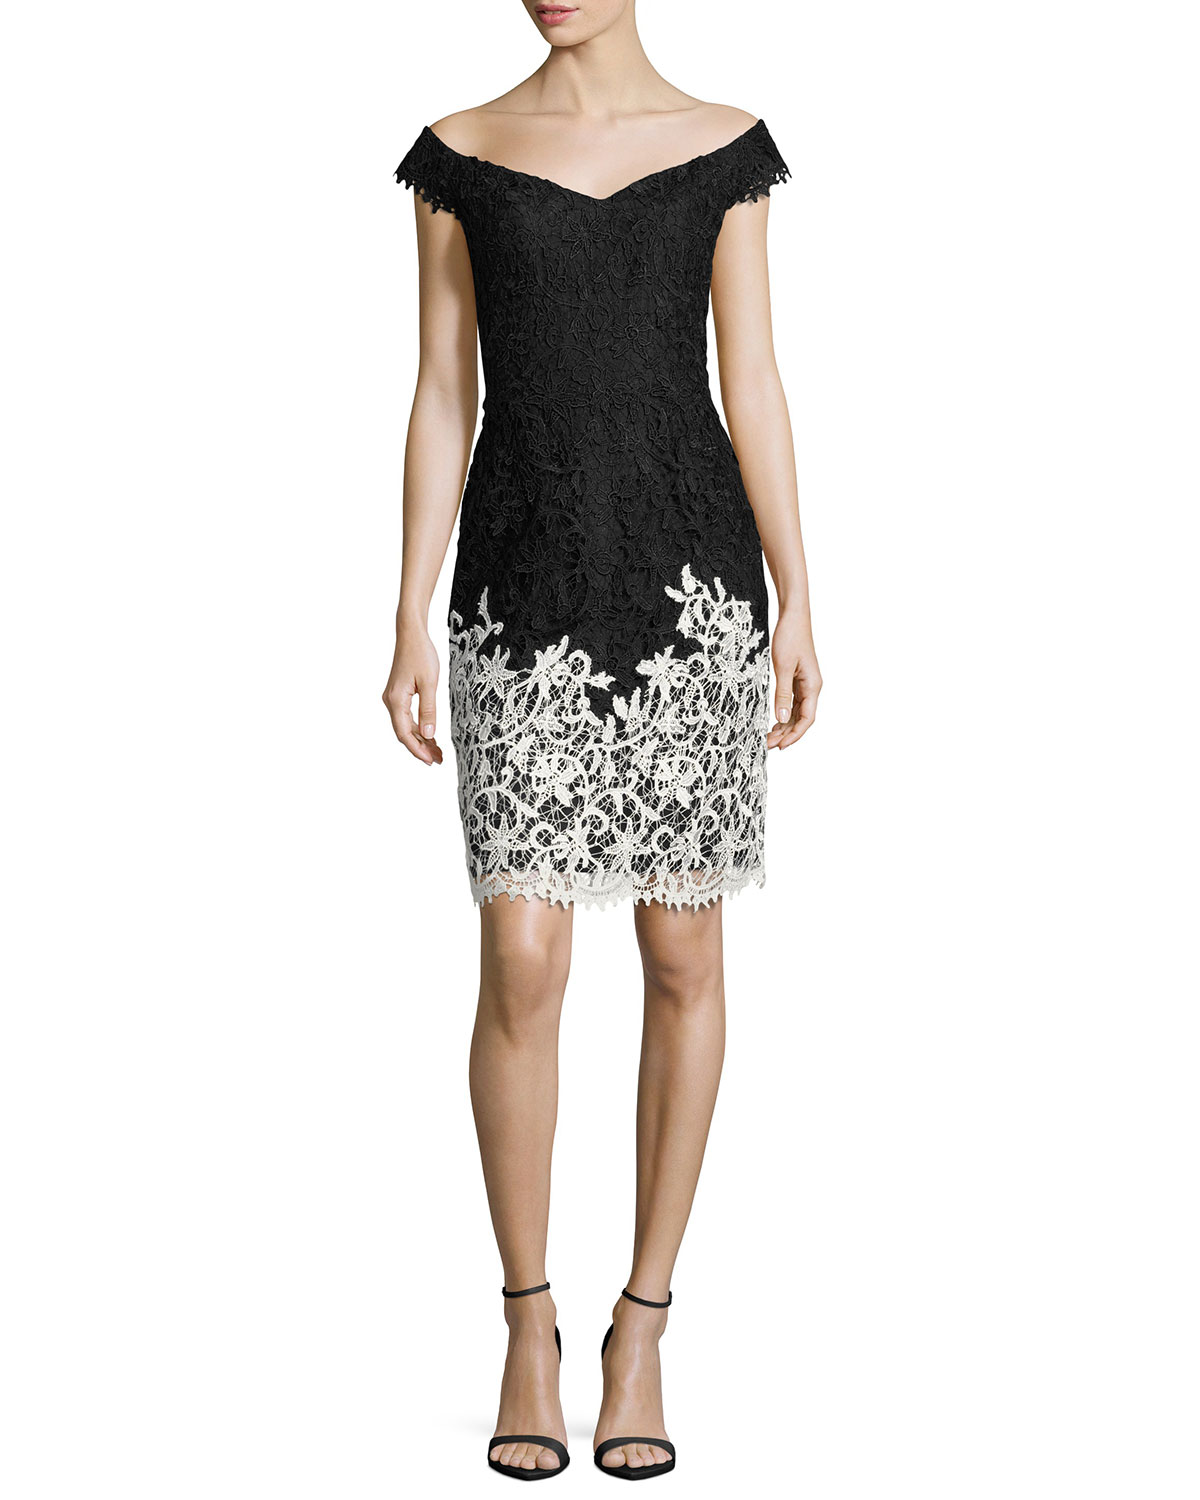 Two-Tone Lace Off-the-Shoulder Cocktail Dress, Black/White